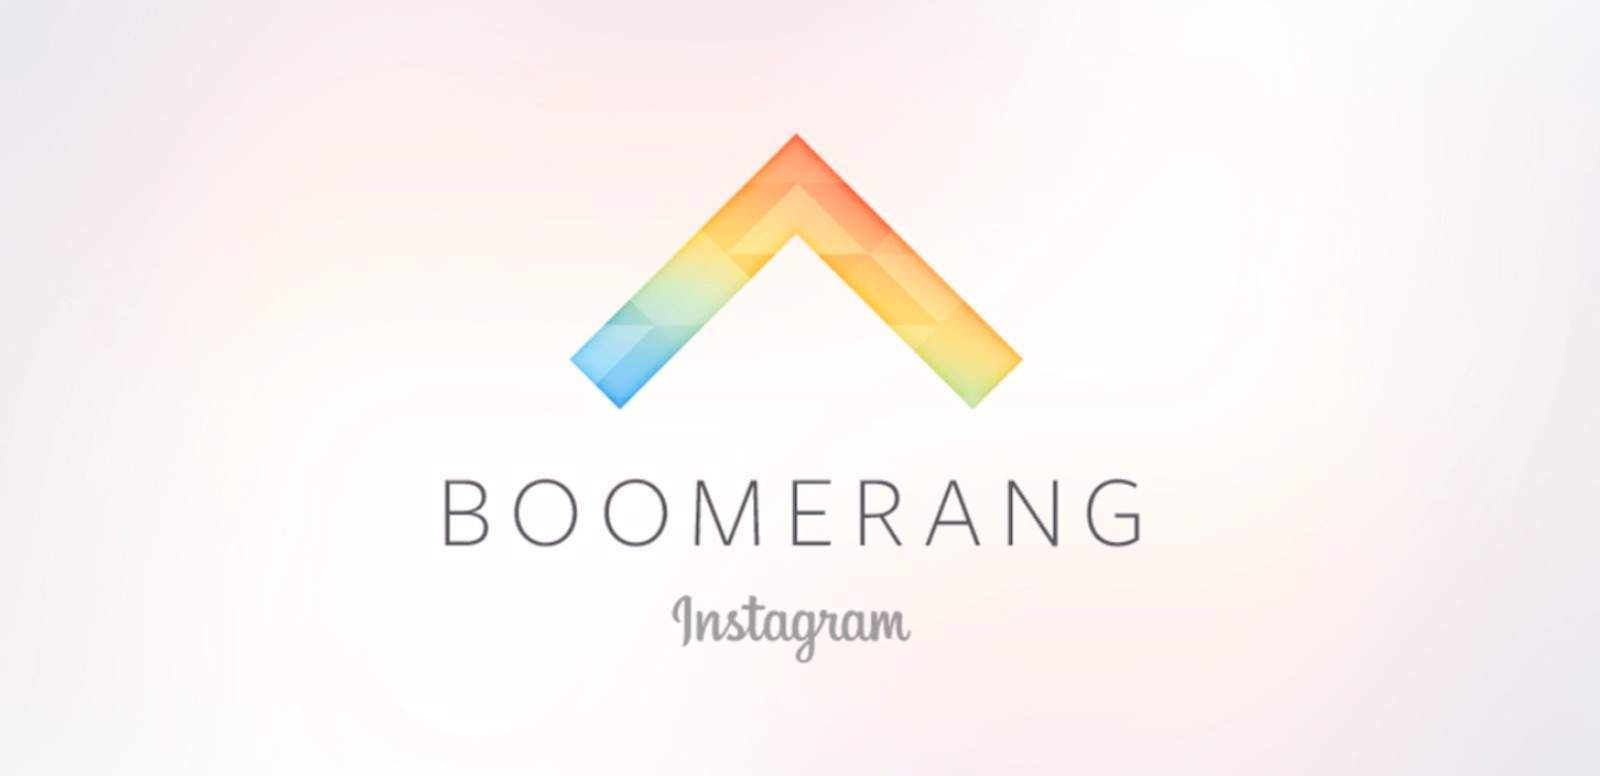 Boomerang is just like Live Photos.